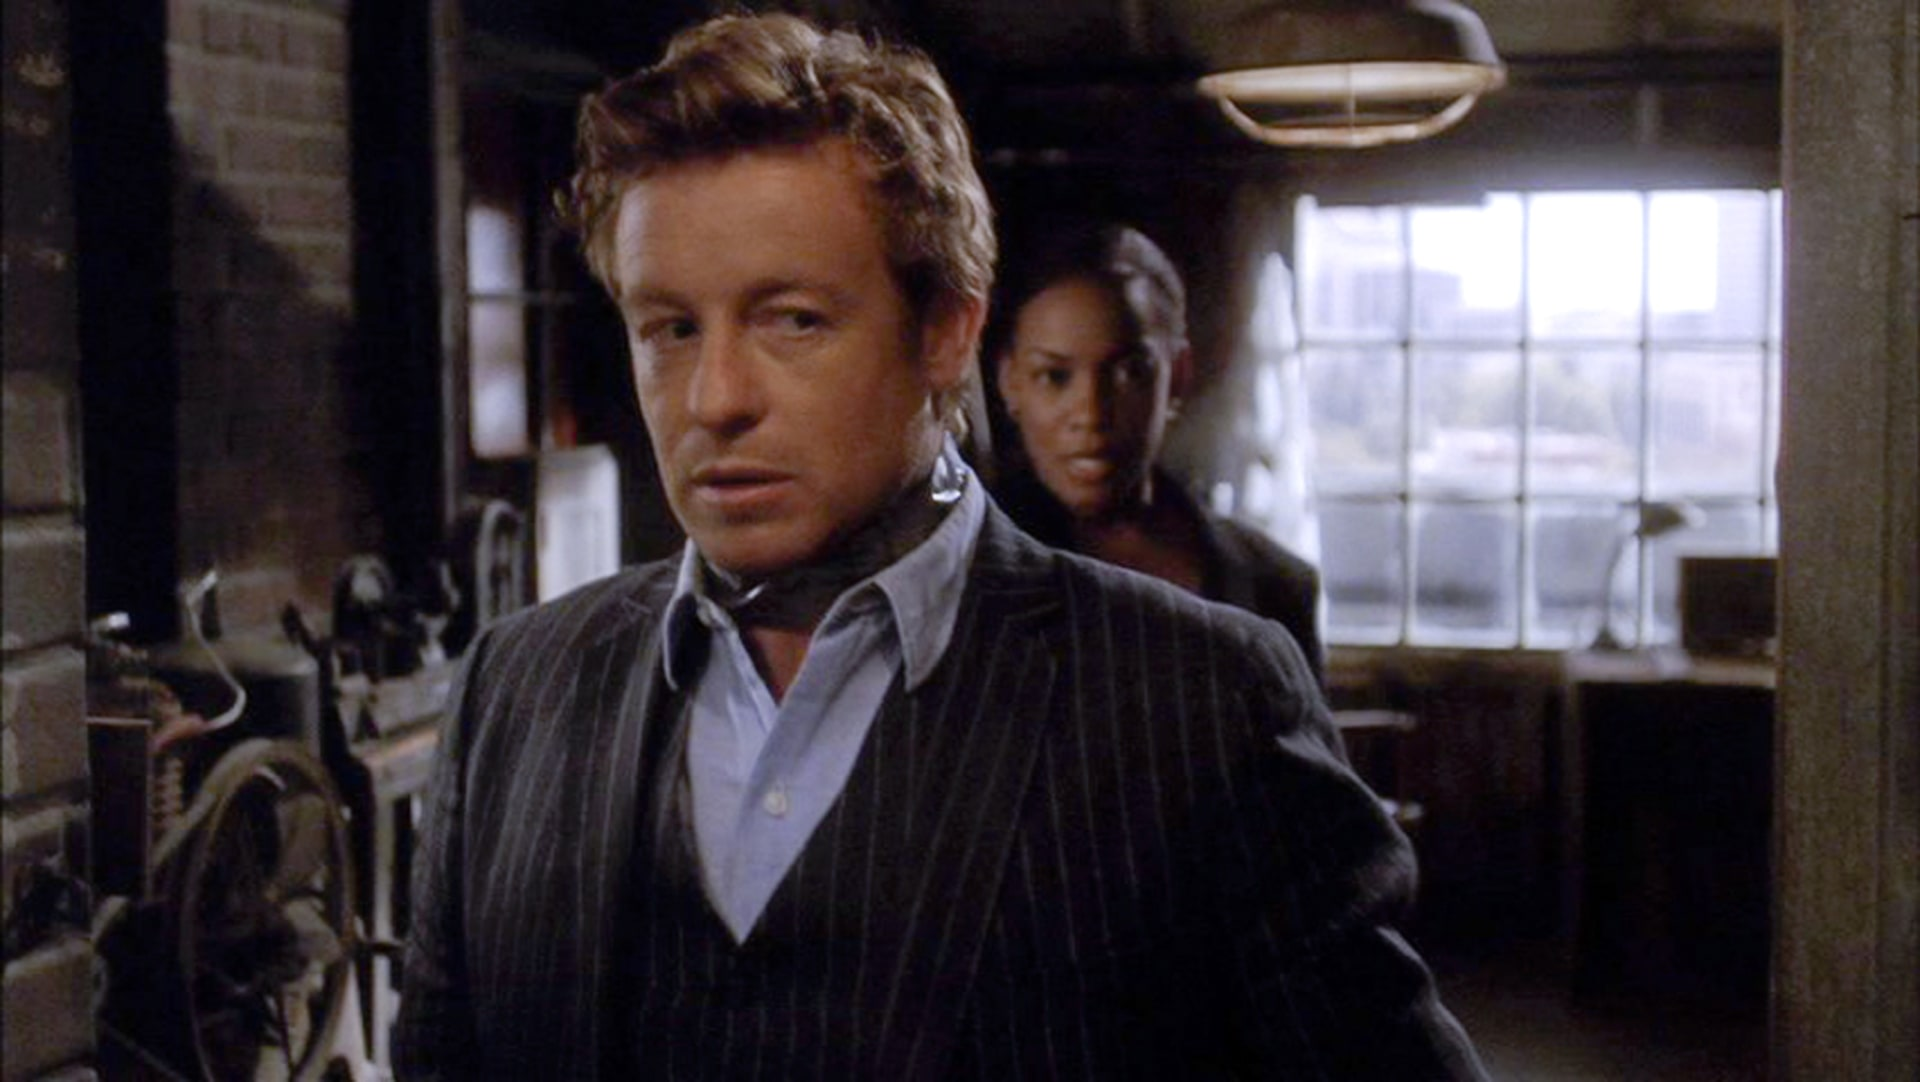 red moon mentalist - photo #17